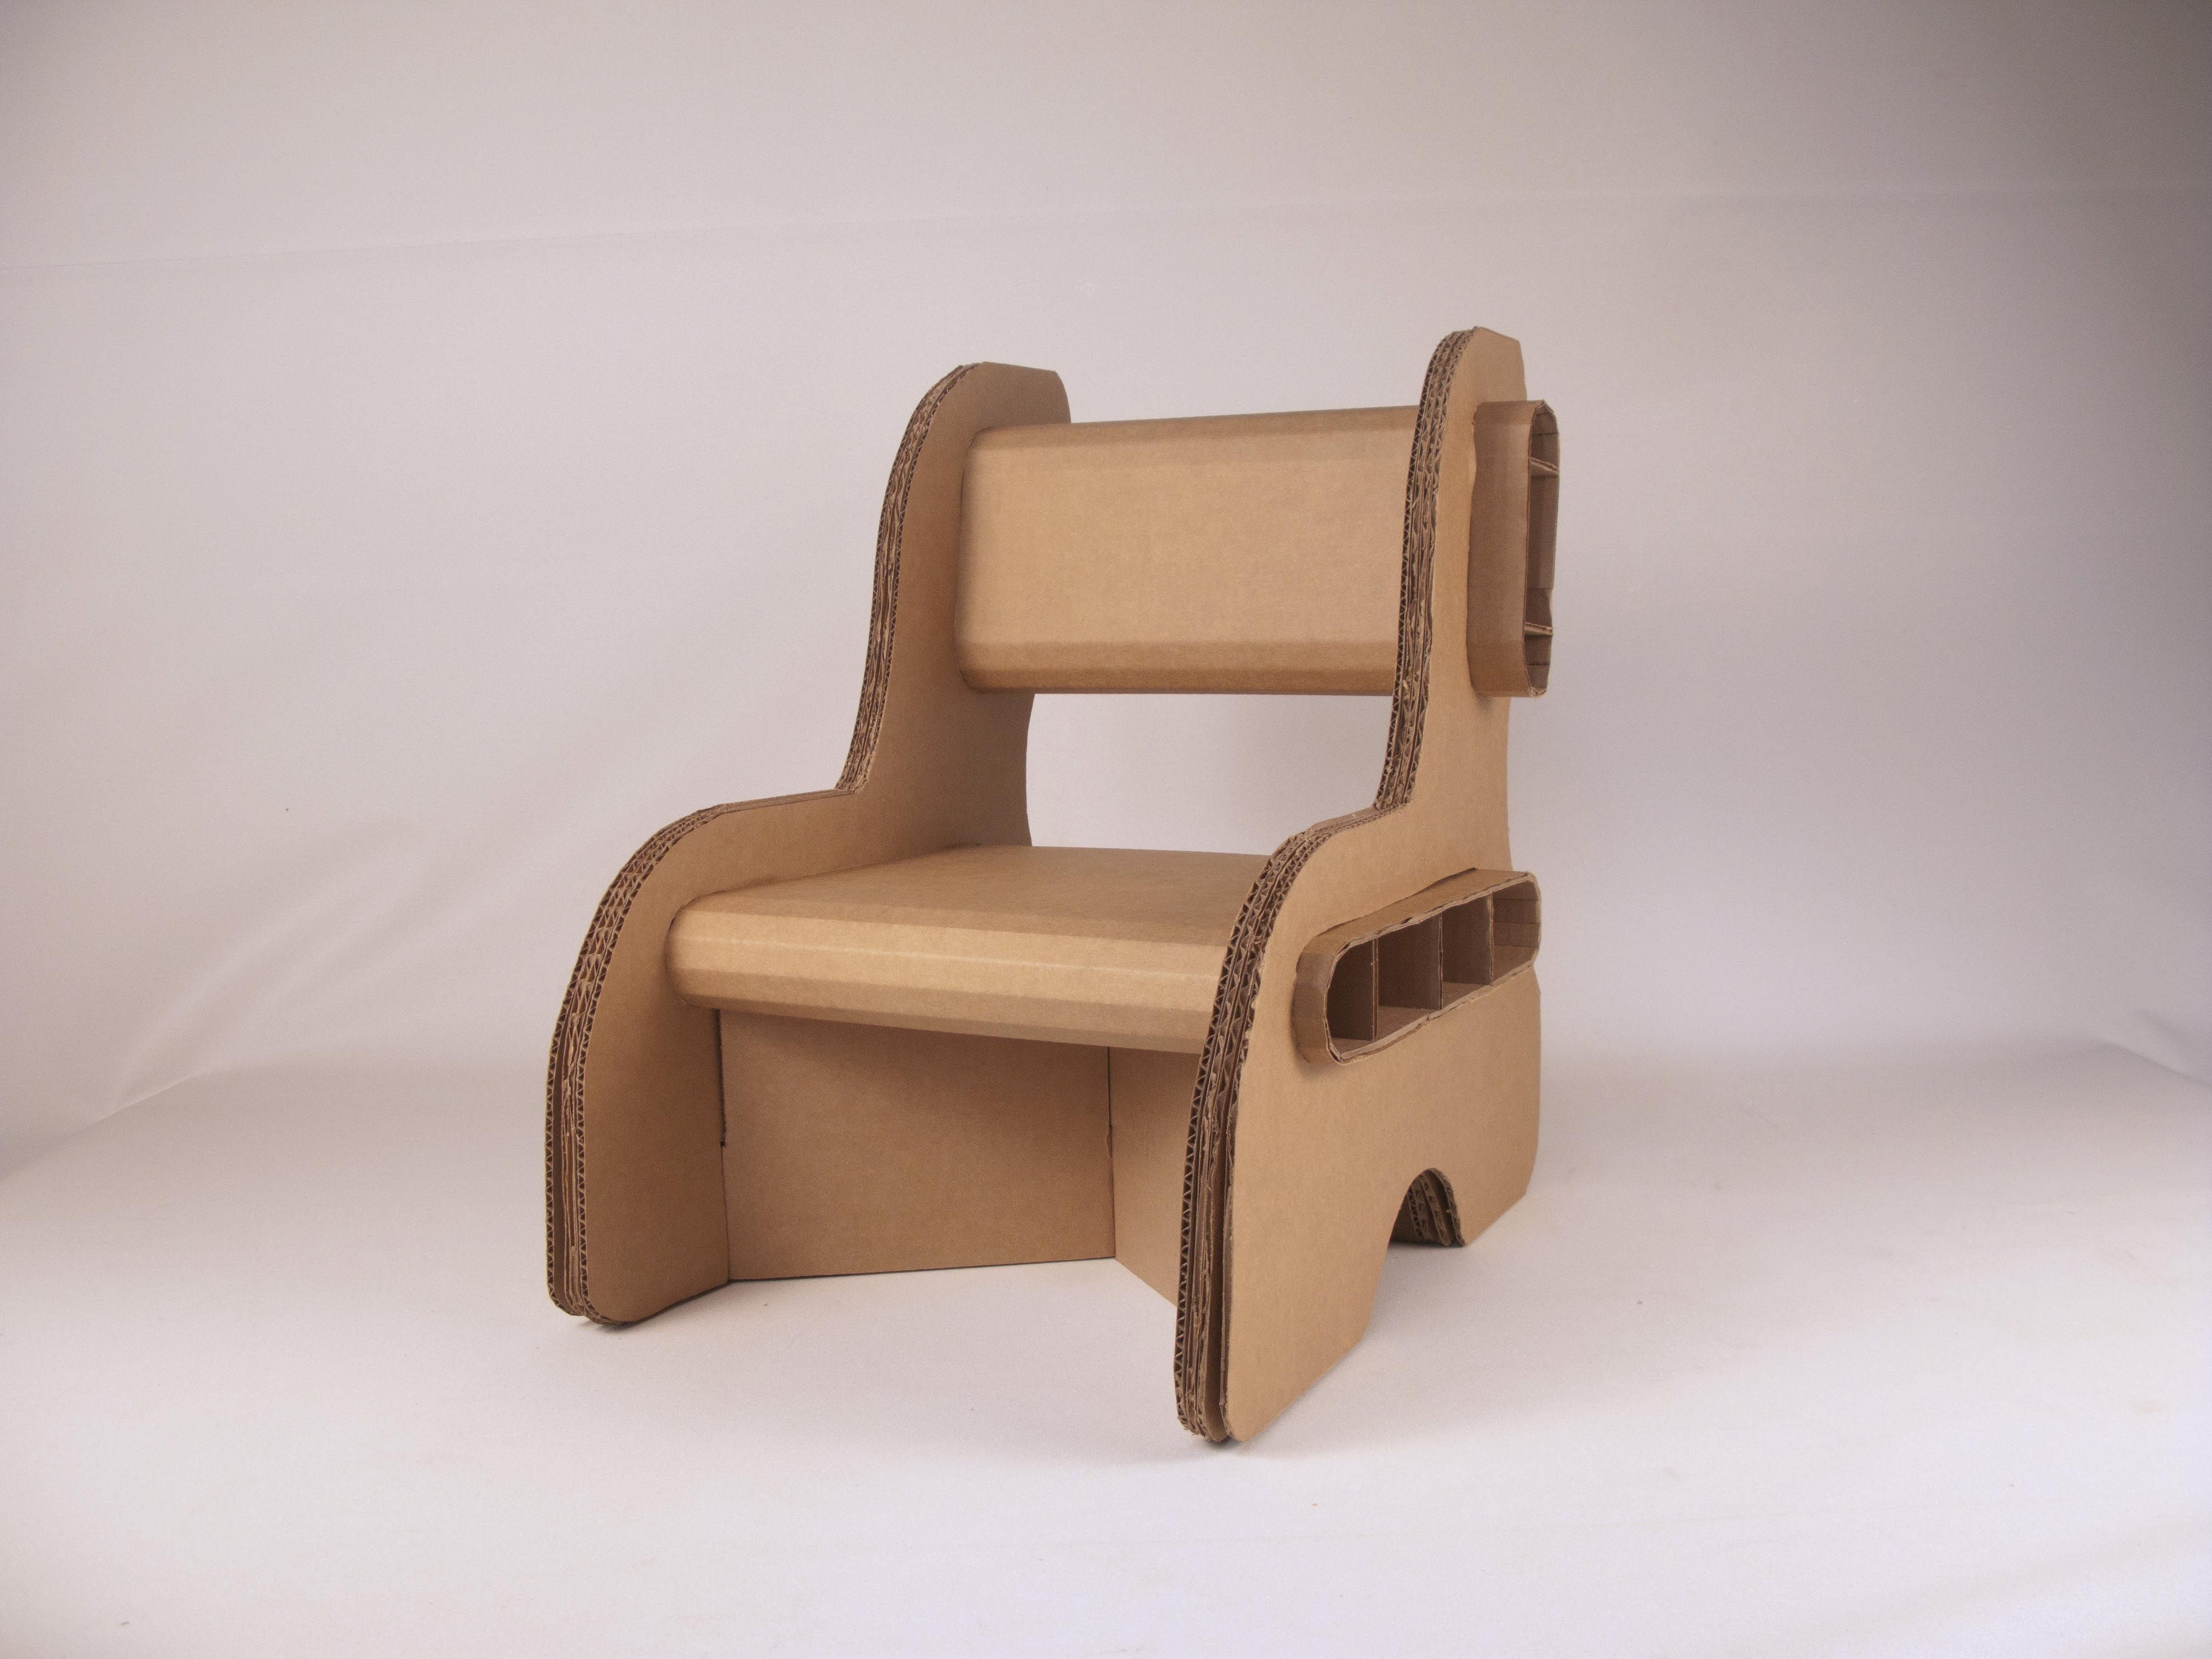 cardboard furniture design. cardboard chair template google search furniture design t